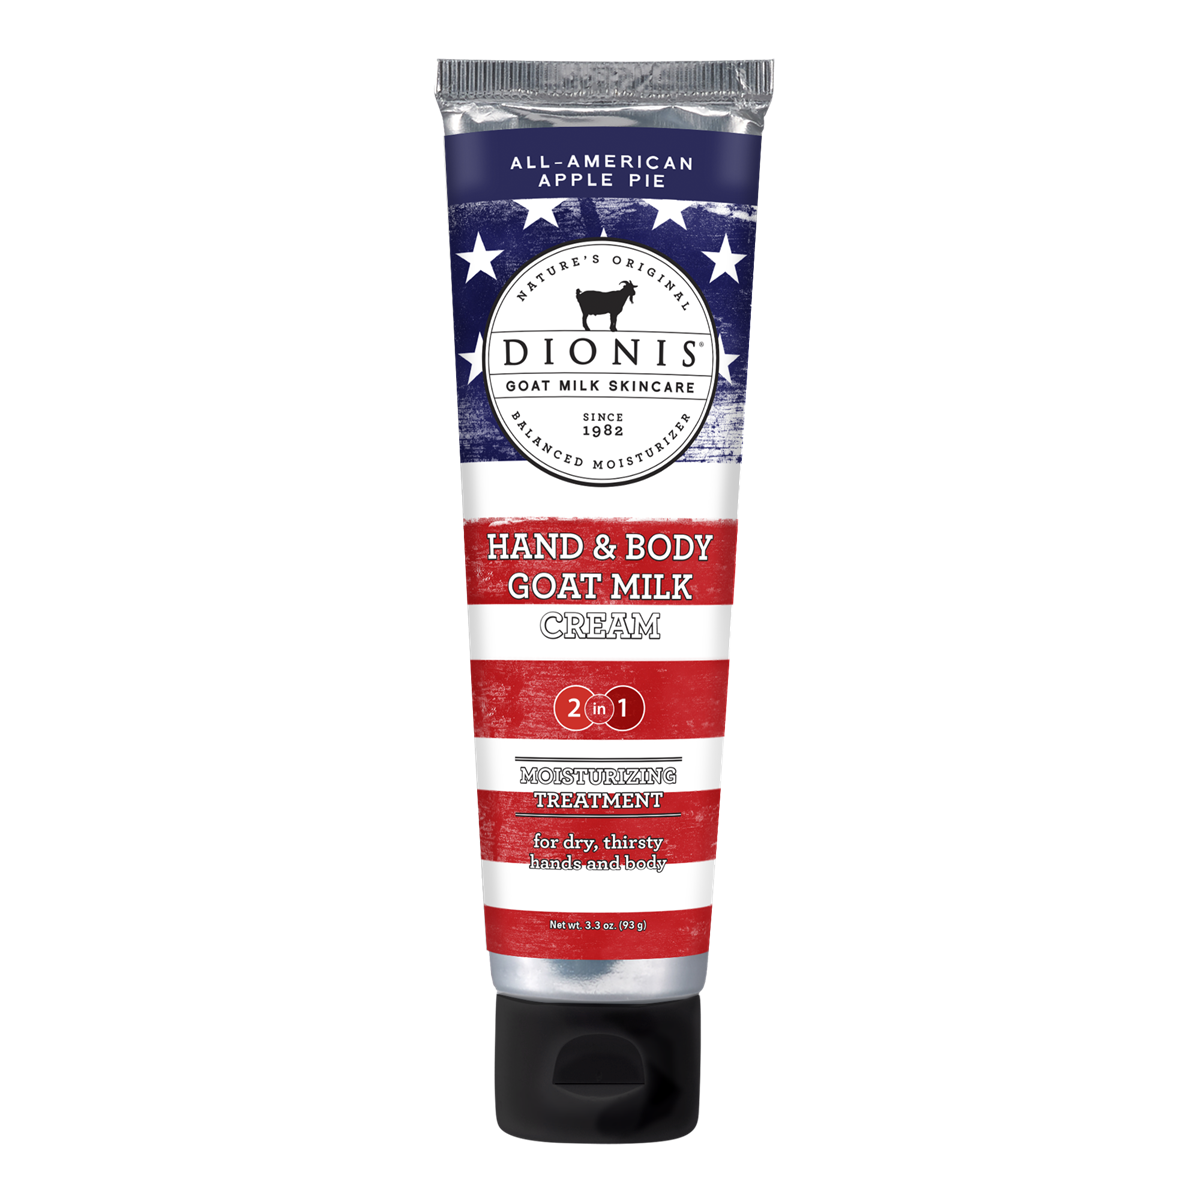 Hand & Body Cream American Pie